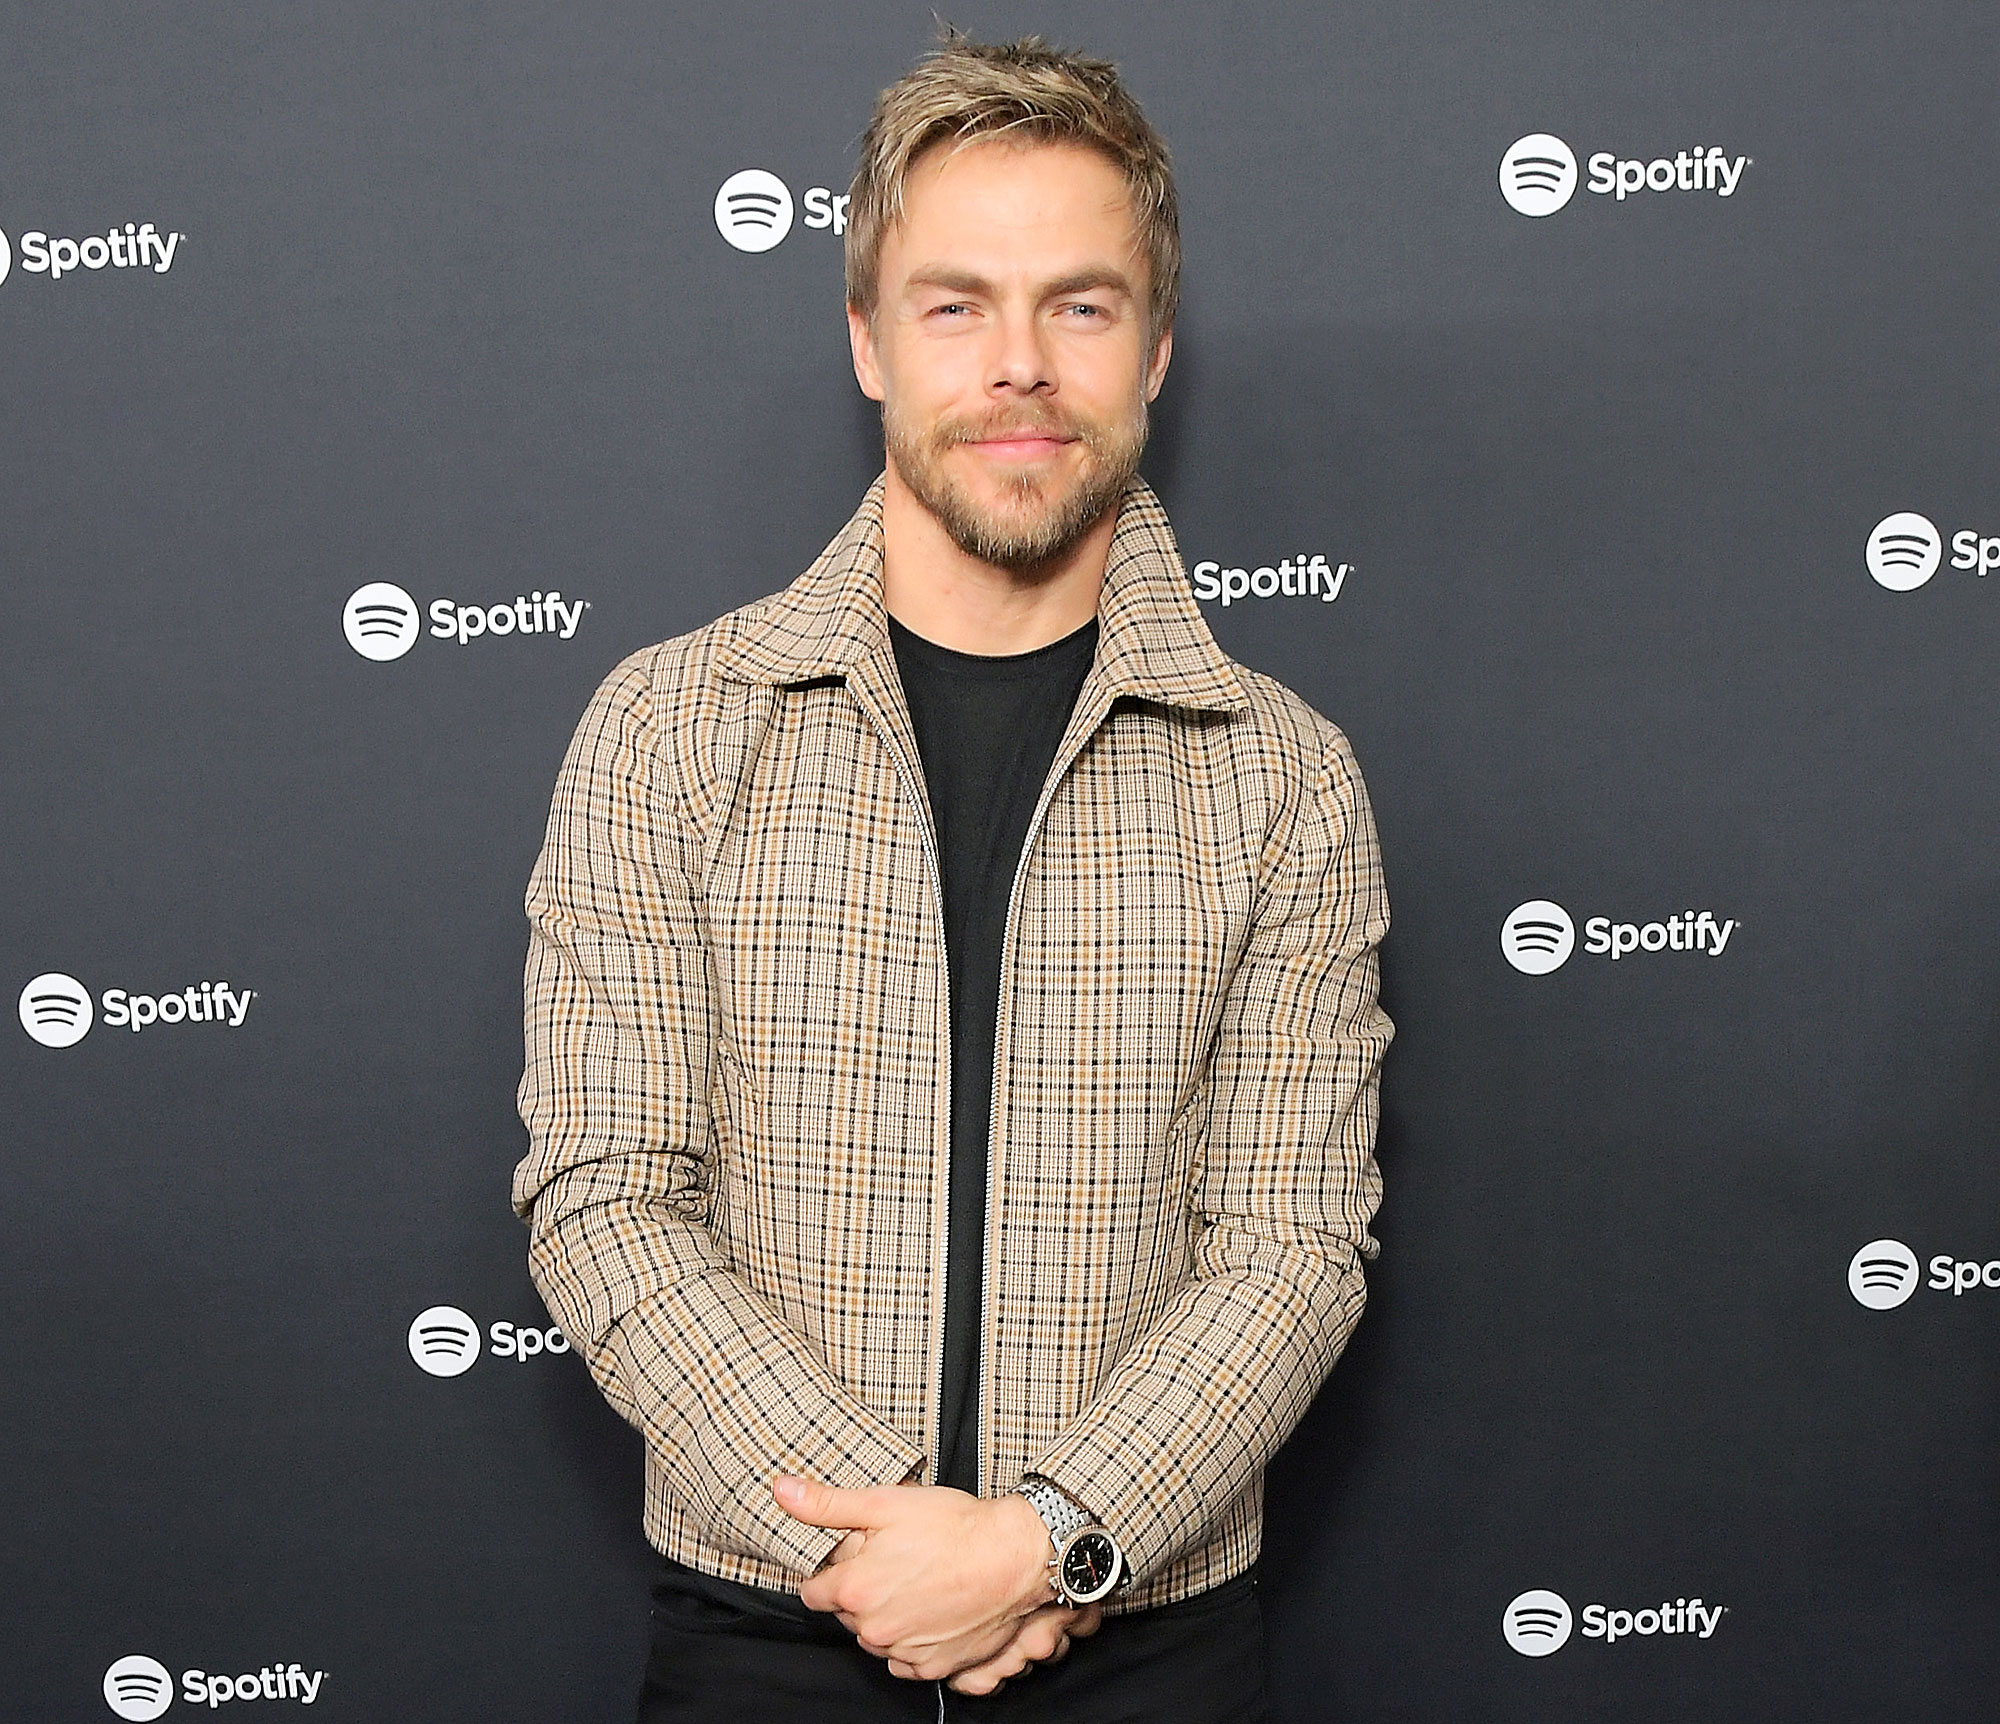 Derek Hough Attends Spotifys Best New Artist Party Derek Hough Says Sister Julianne Hough Is Crushing It Amid Brooks Laich Issues